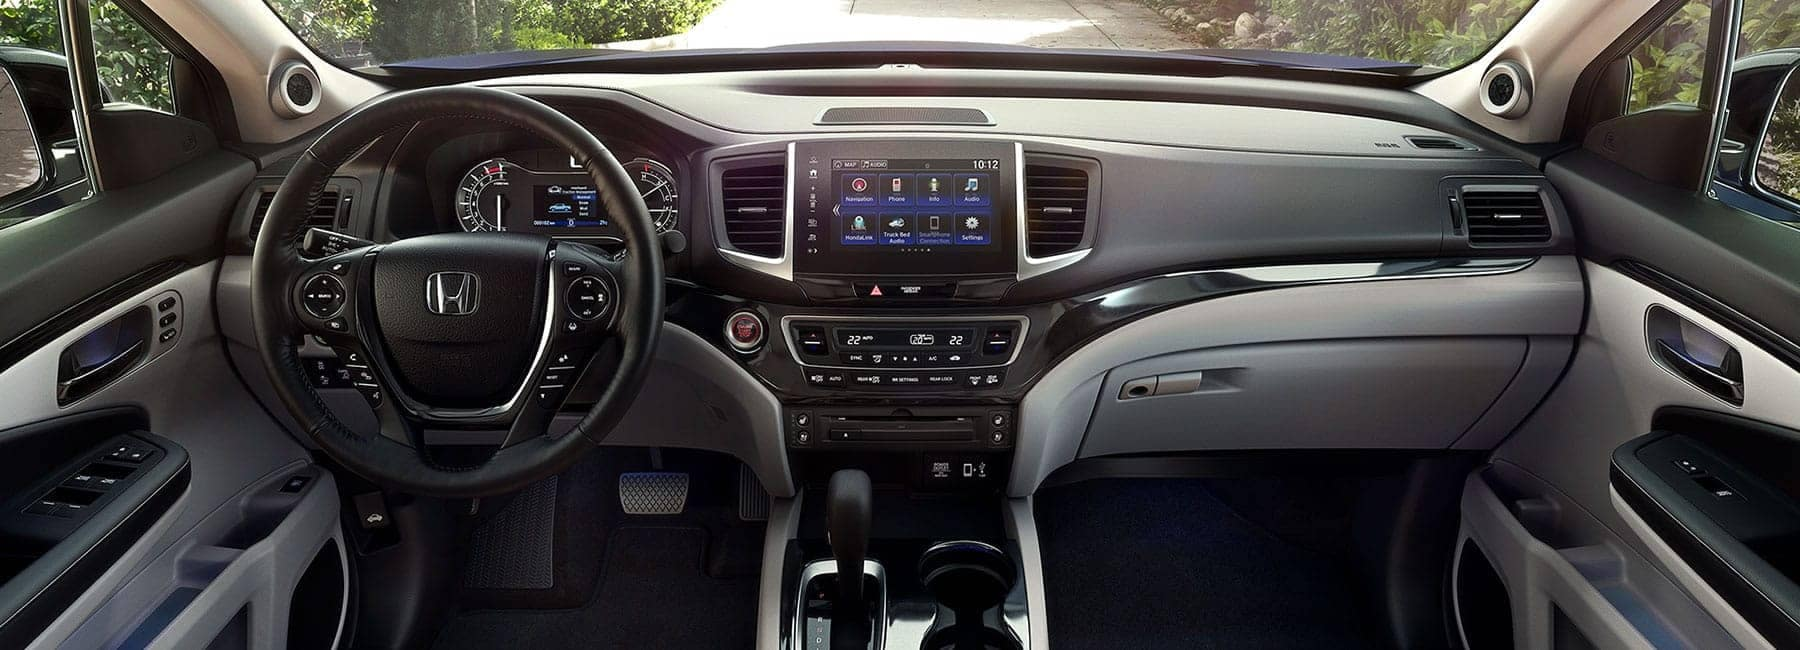 Honda Ridgeline interior car dashboard